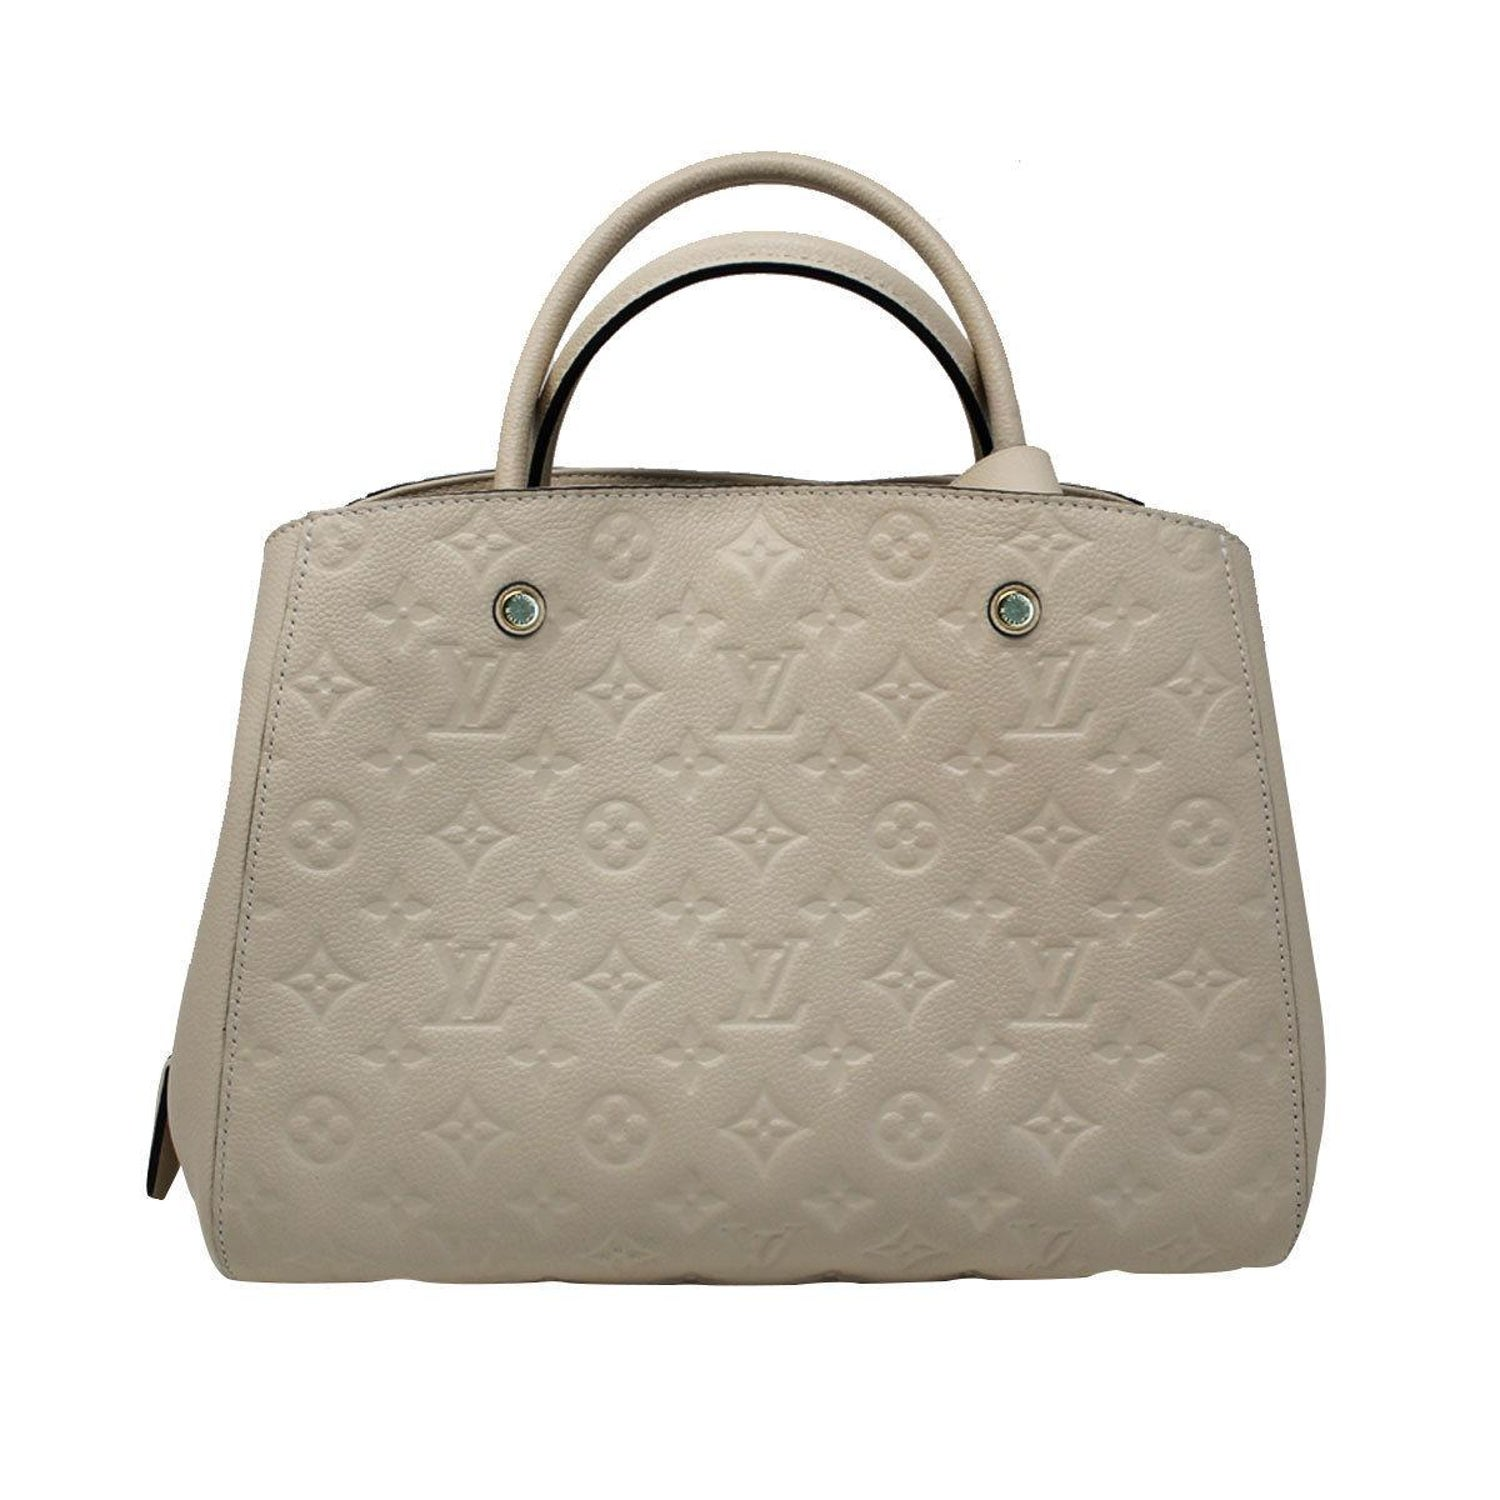 05f4a7c07db2 Louis Vuitton Montaigne Neige Empreinte Handbag With Dust Bag For Sale at  1stdibs